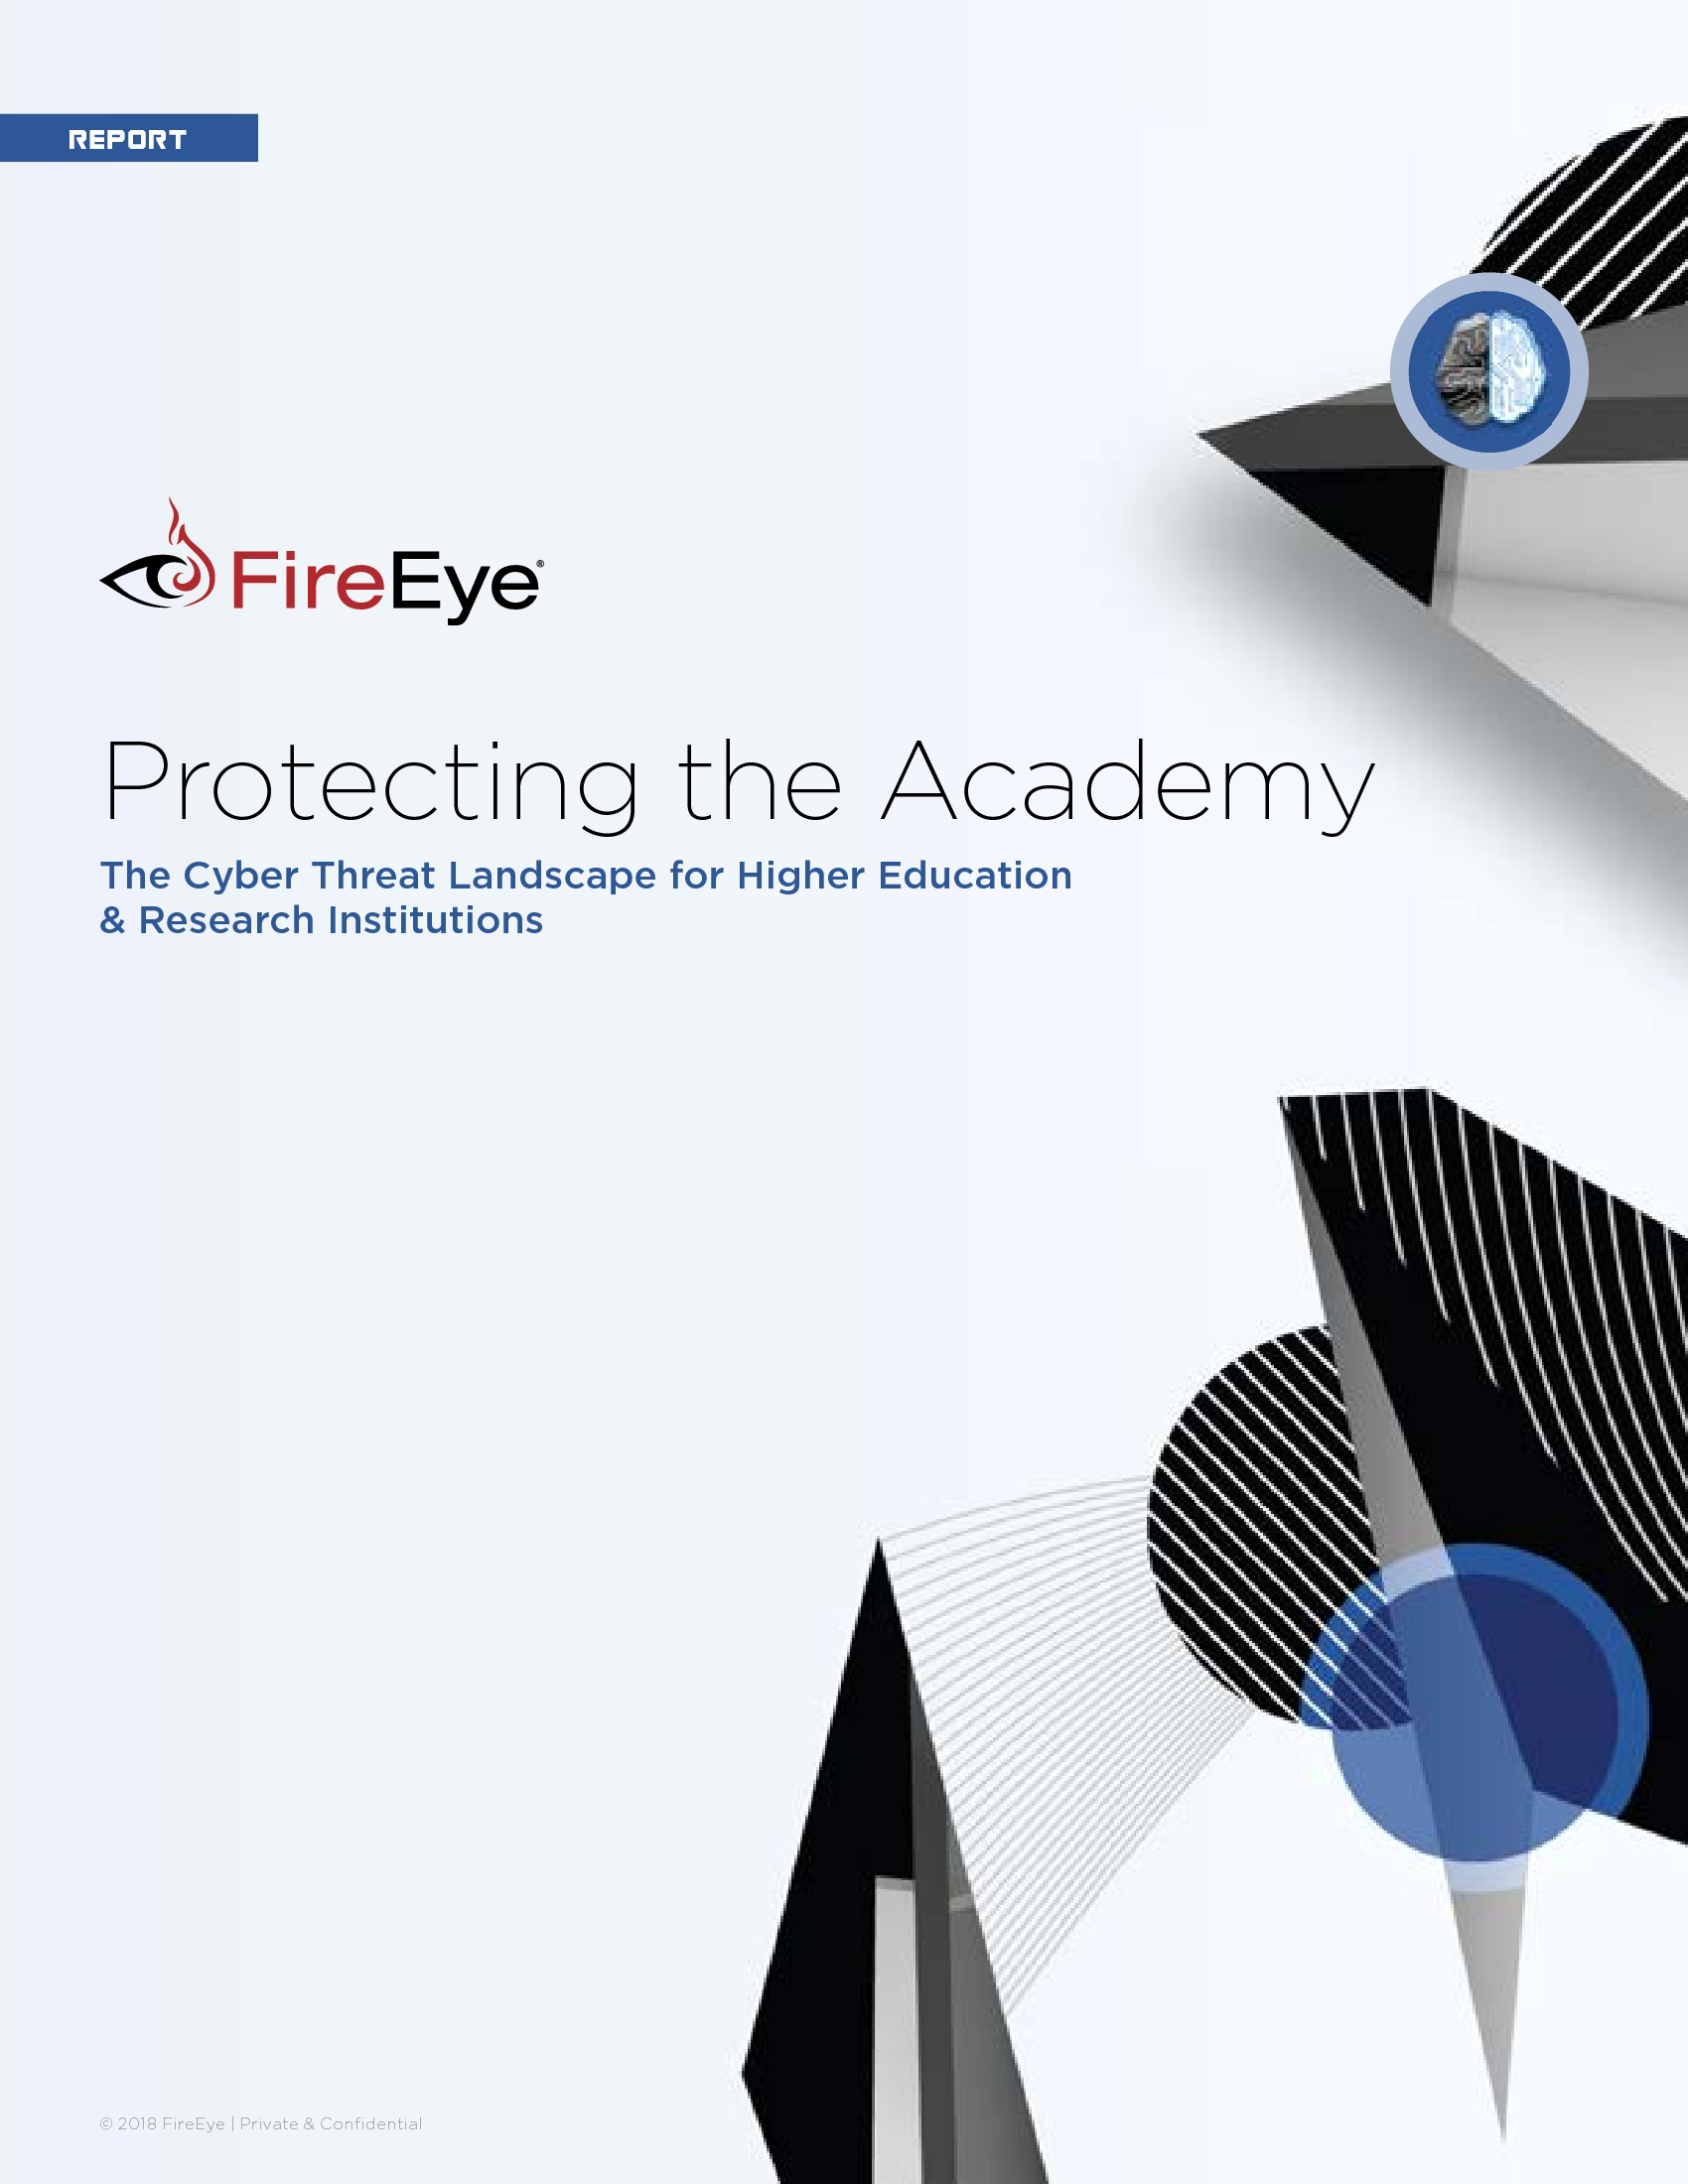 Protecting the Academy: The Cyber Threat Landscape for Higher Education & Research Institutions